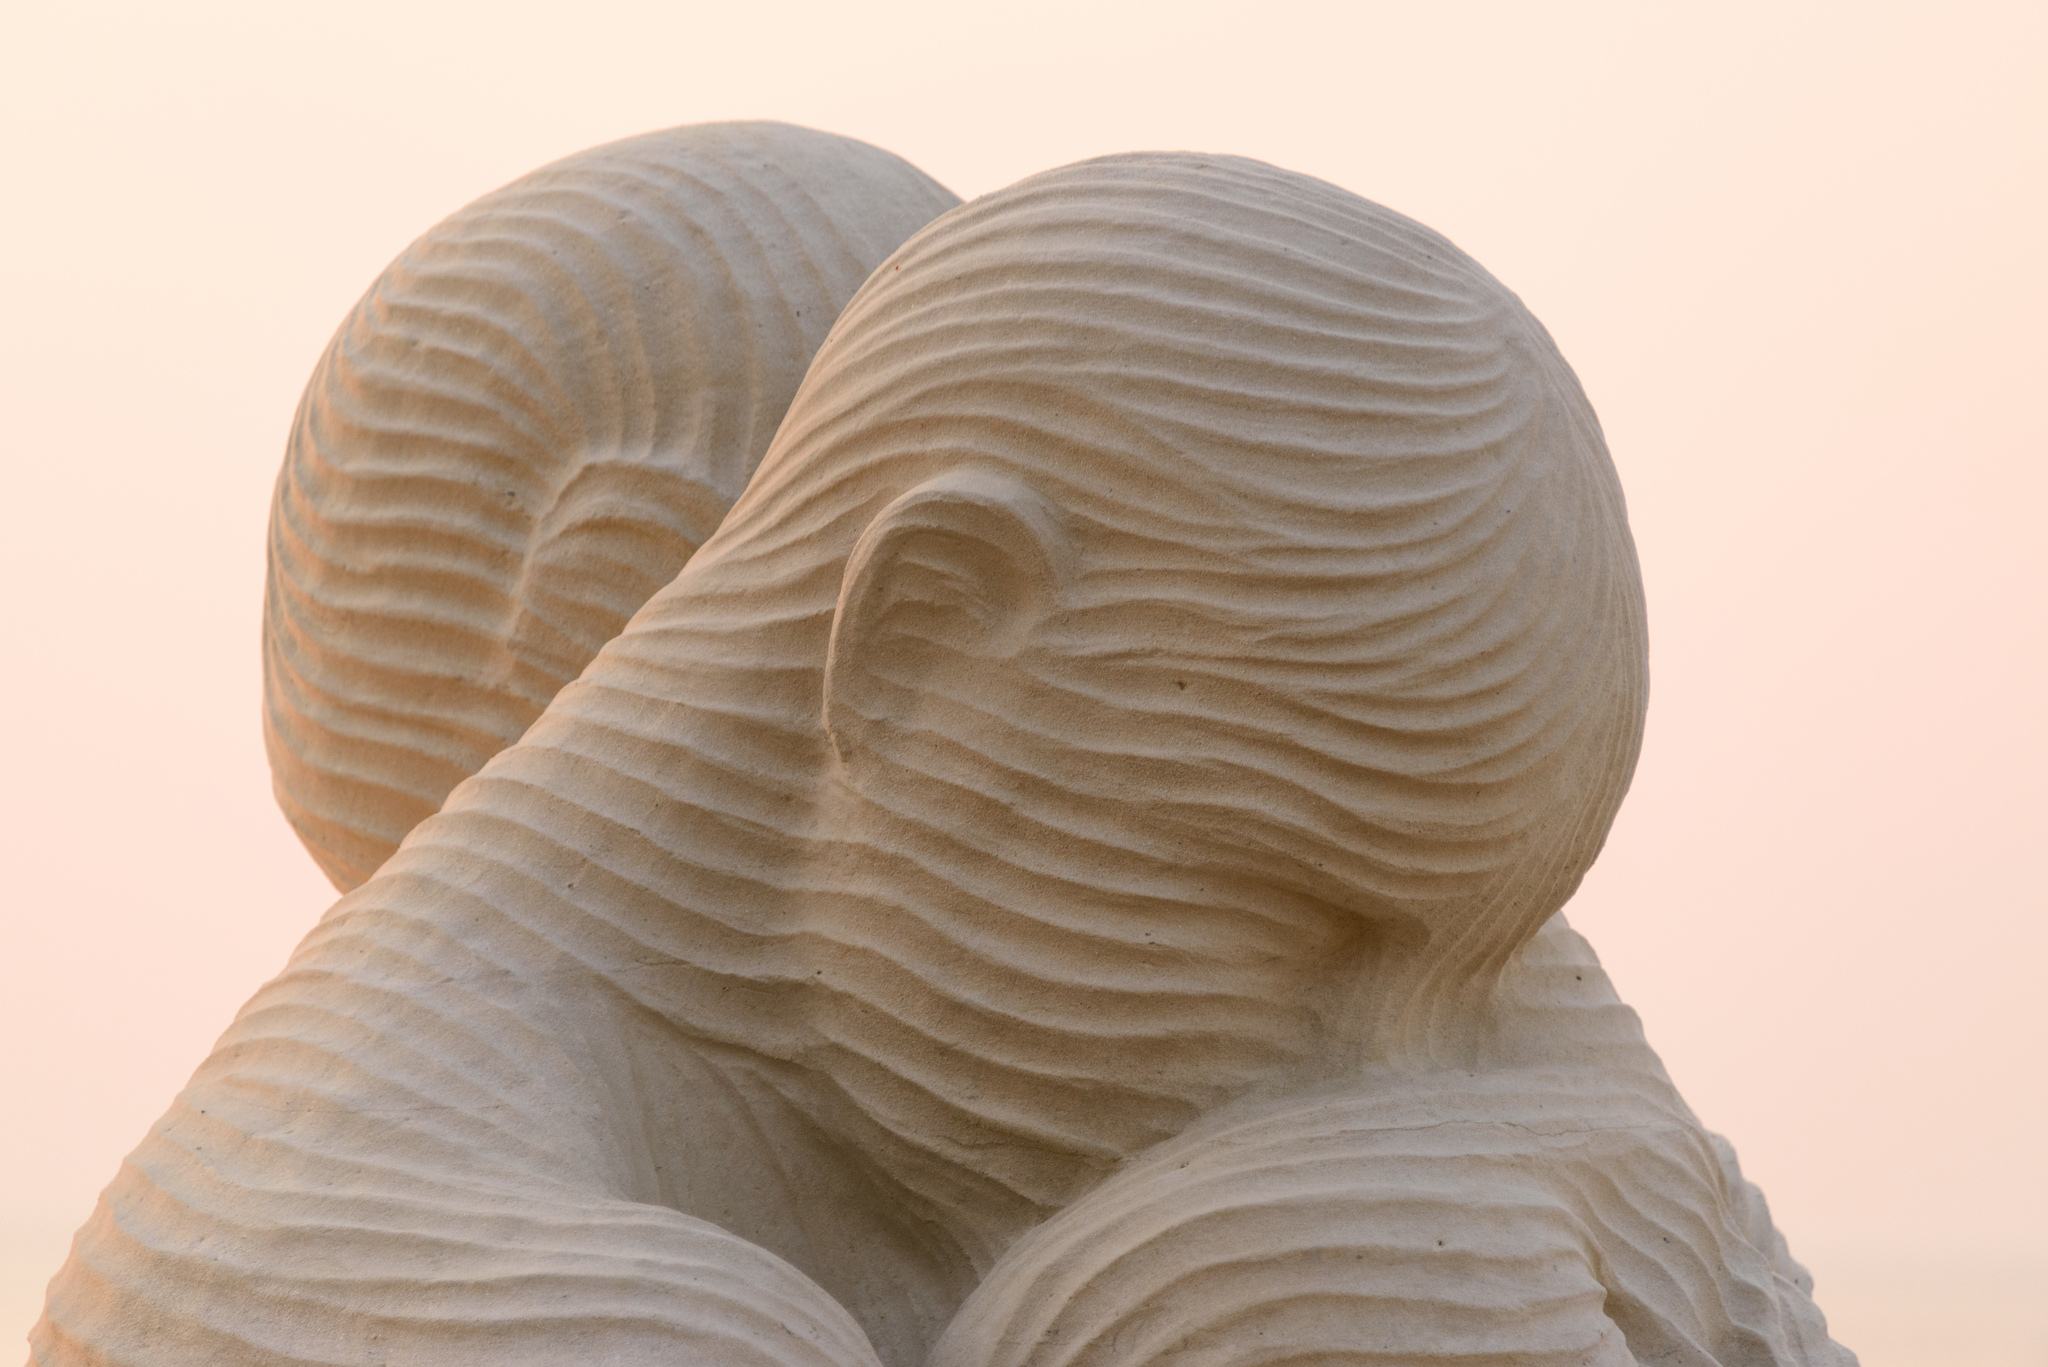 An image of a sand sculpture depicting two figures leaning against one another's shoulders.